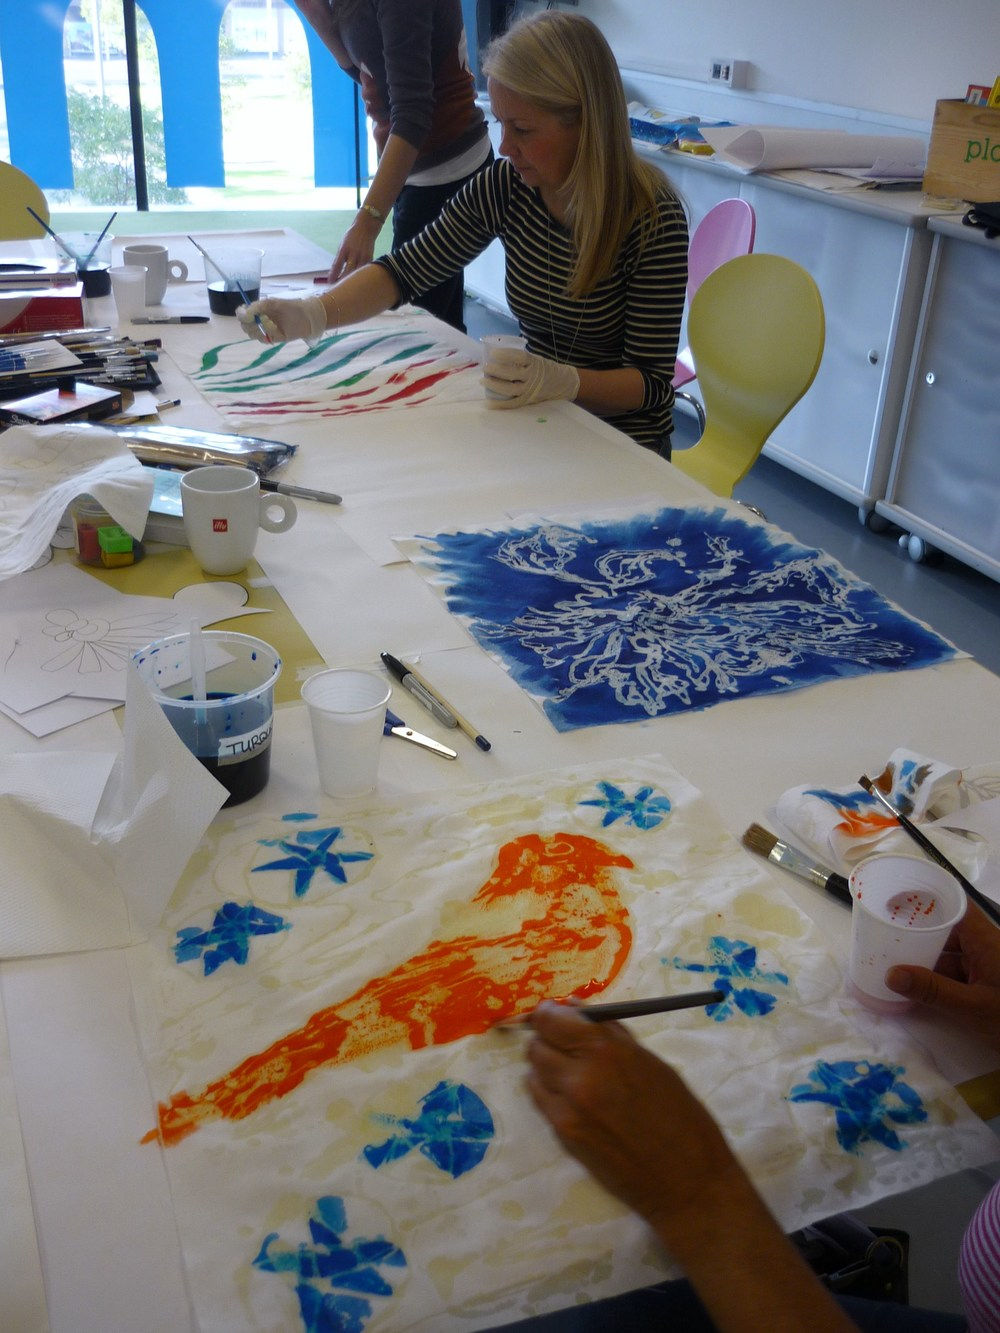 Mima batik workshop 004.JPG